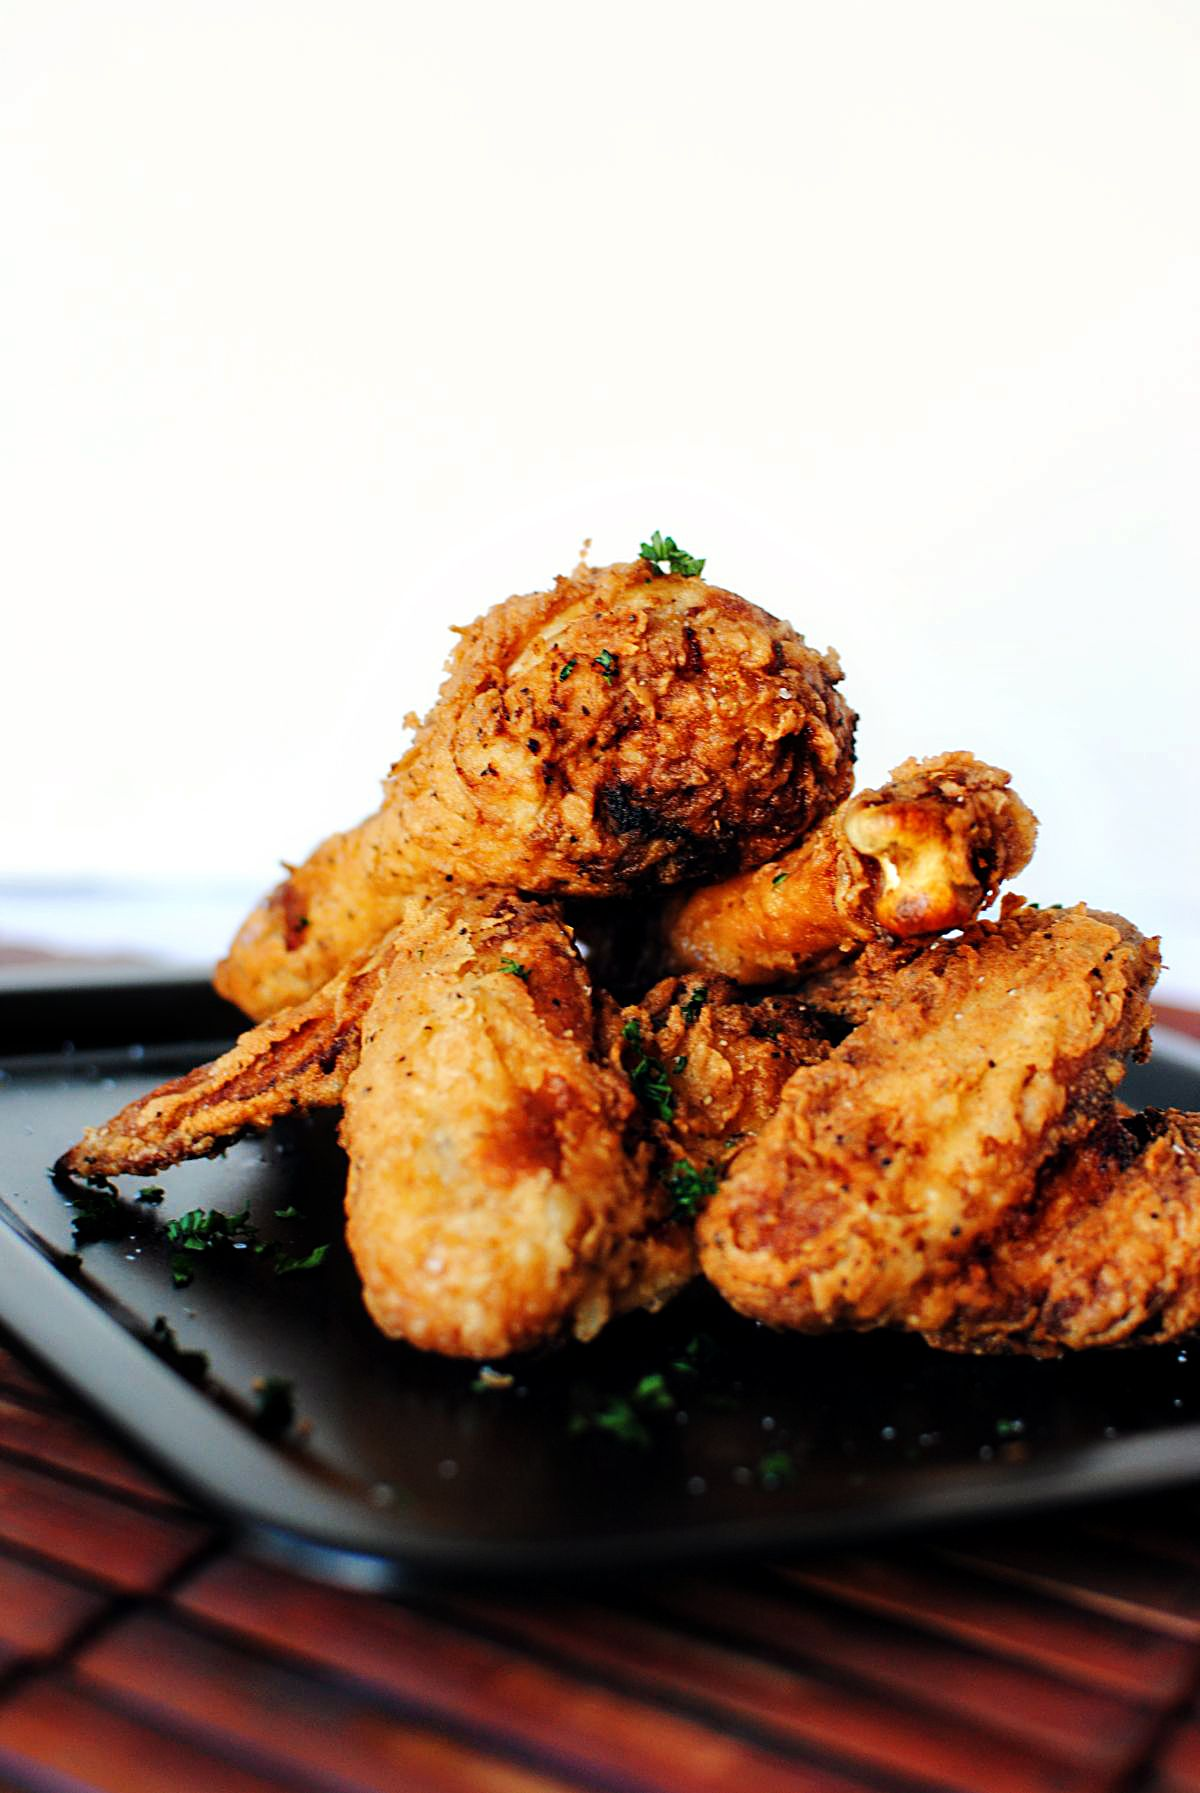 Pin By Phyllis Martin On Pretty Food Great Chicken Recipes Fried Chicken Buttermilk Fried Chicken